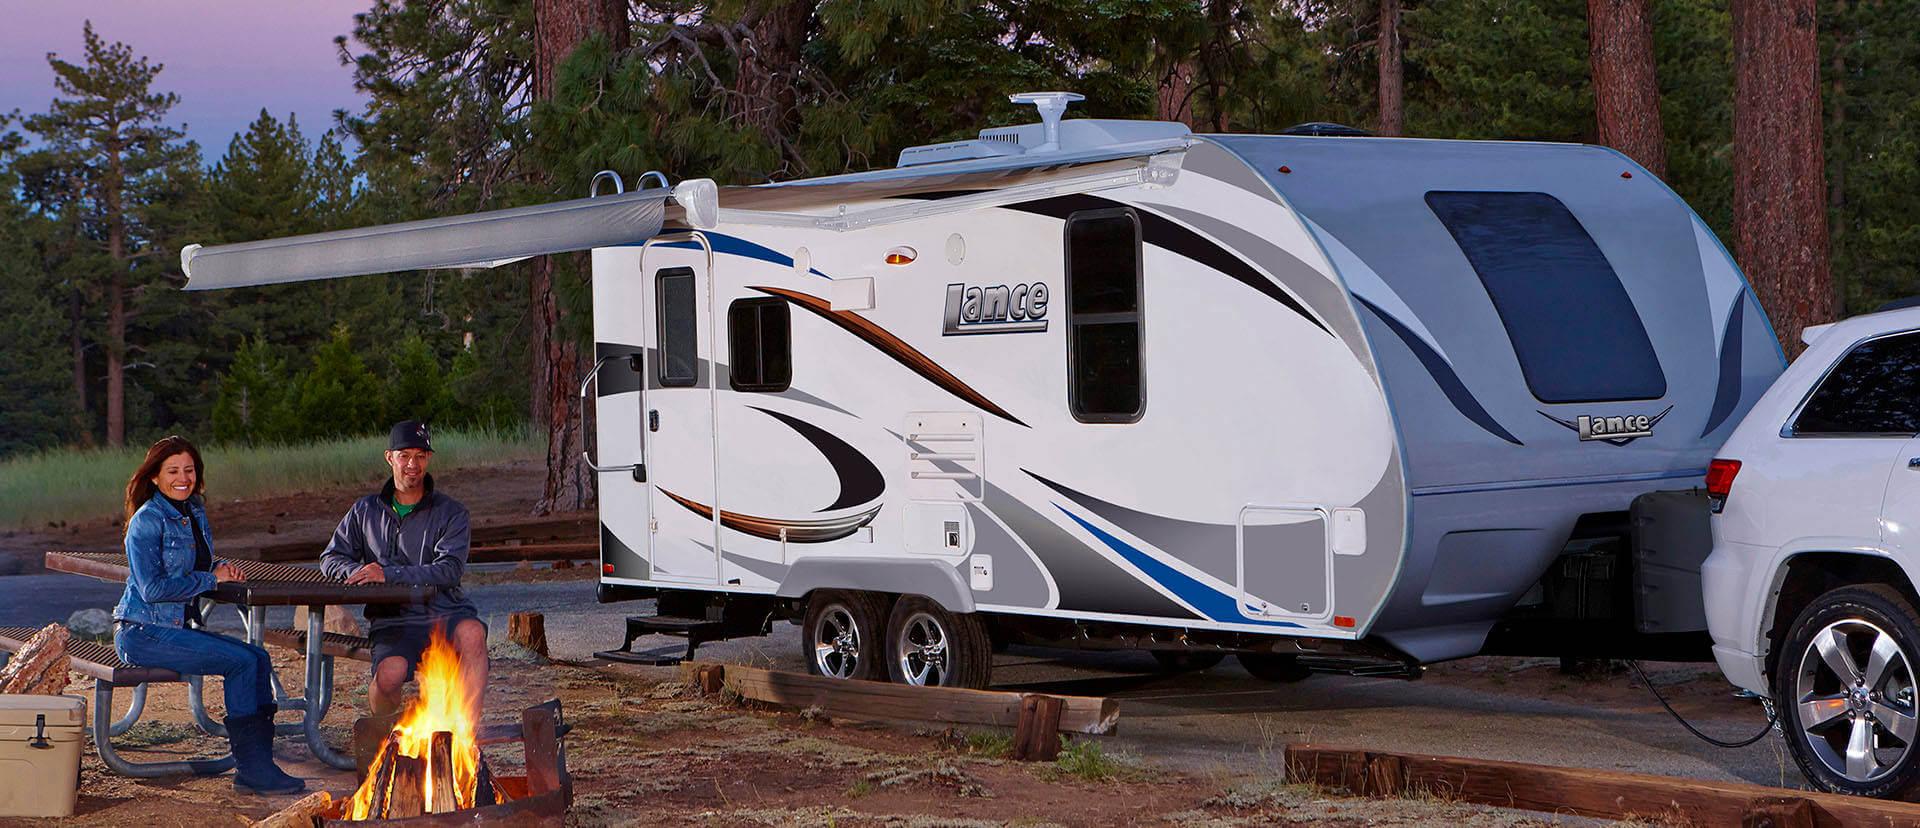 lance travel trailers | The Small Trailer Enthusiast